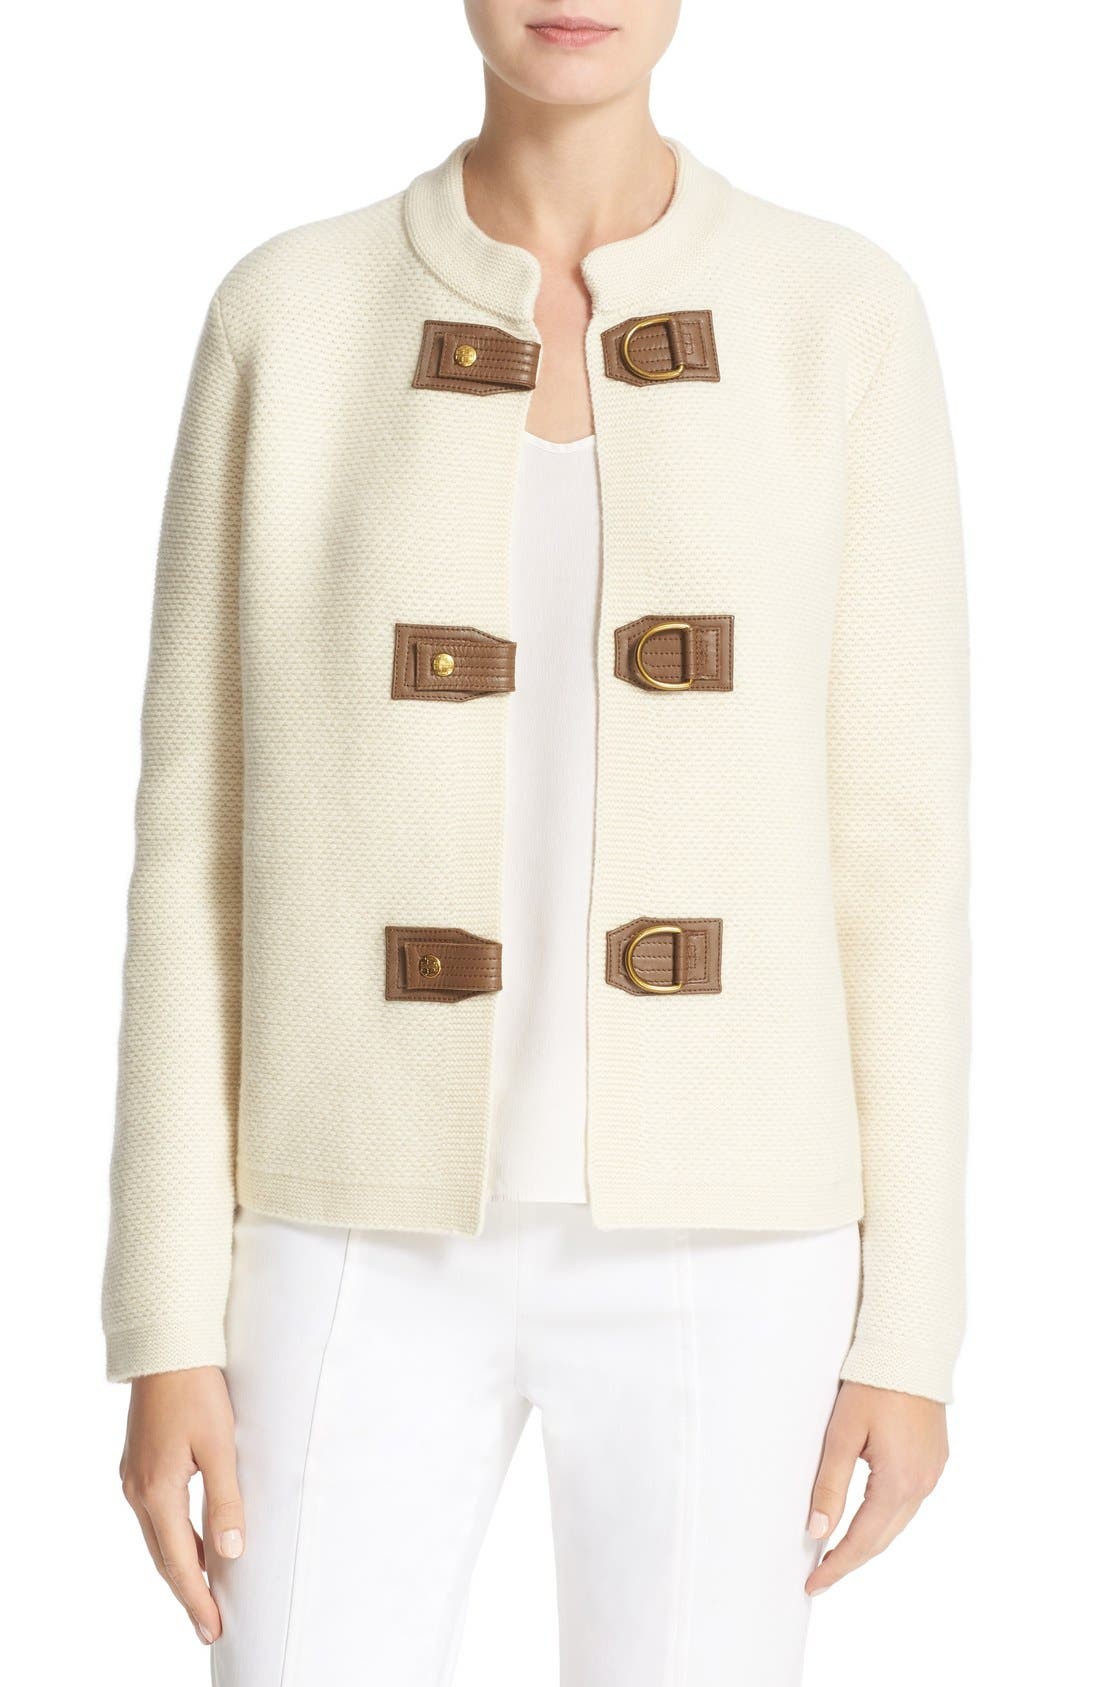 Alternate Image 1 Selected - Tory Burch 'Ross' Leather Tab Merino Wool Cardigan